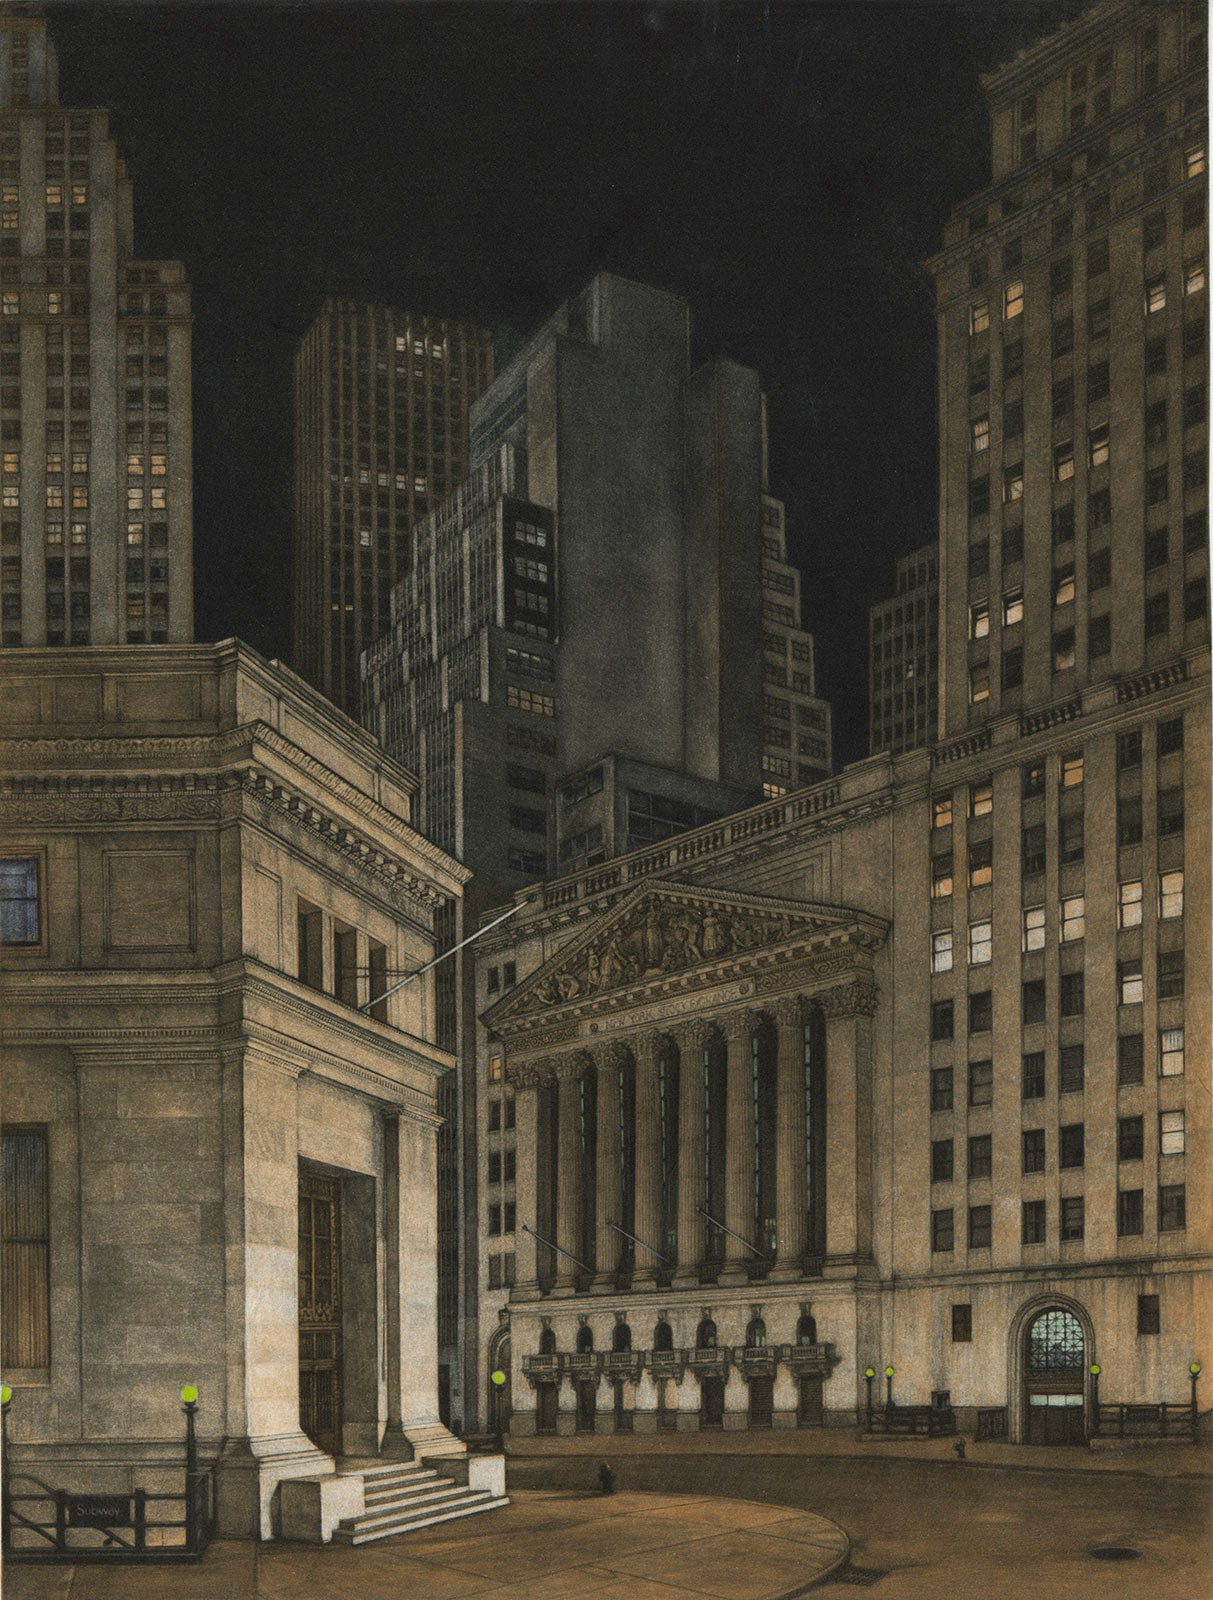 New York Stock Exchange (Symbolic icon of Wall St.'s vast power and wealth)